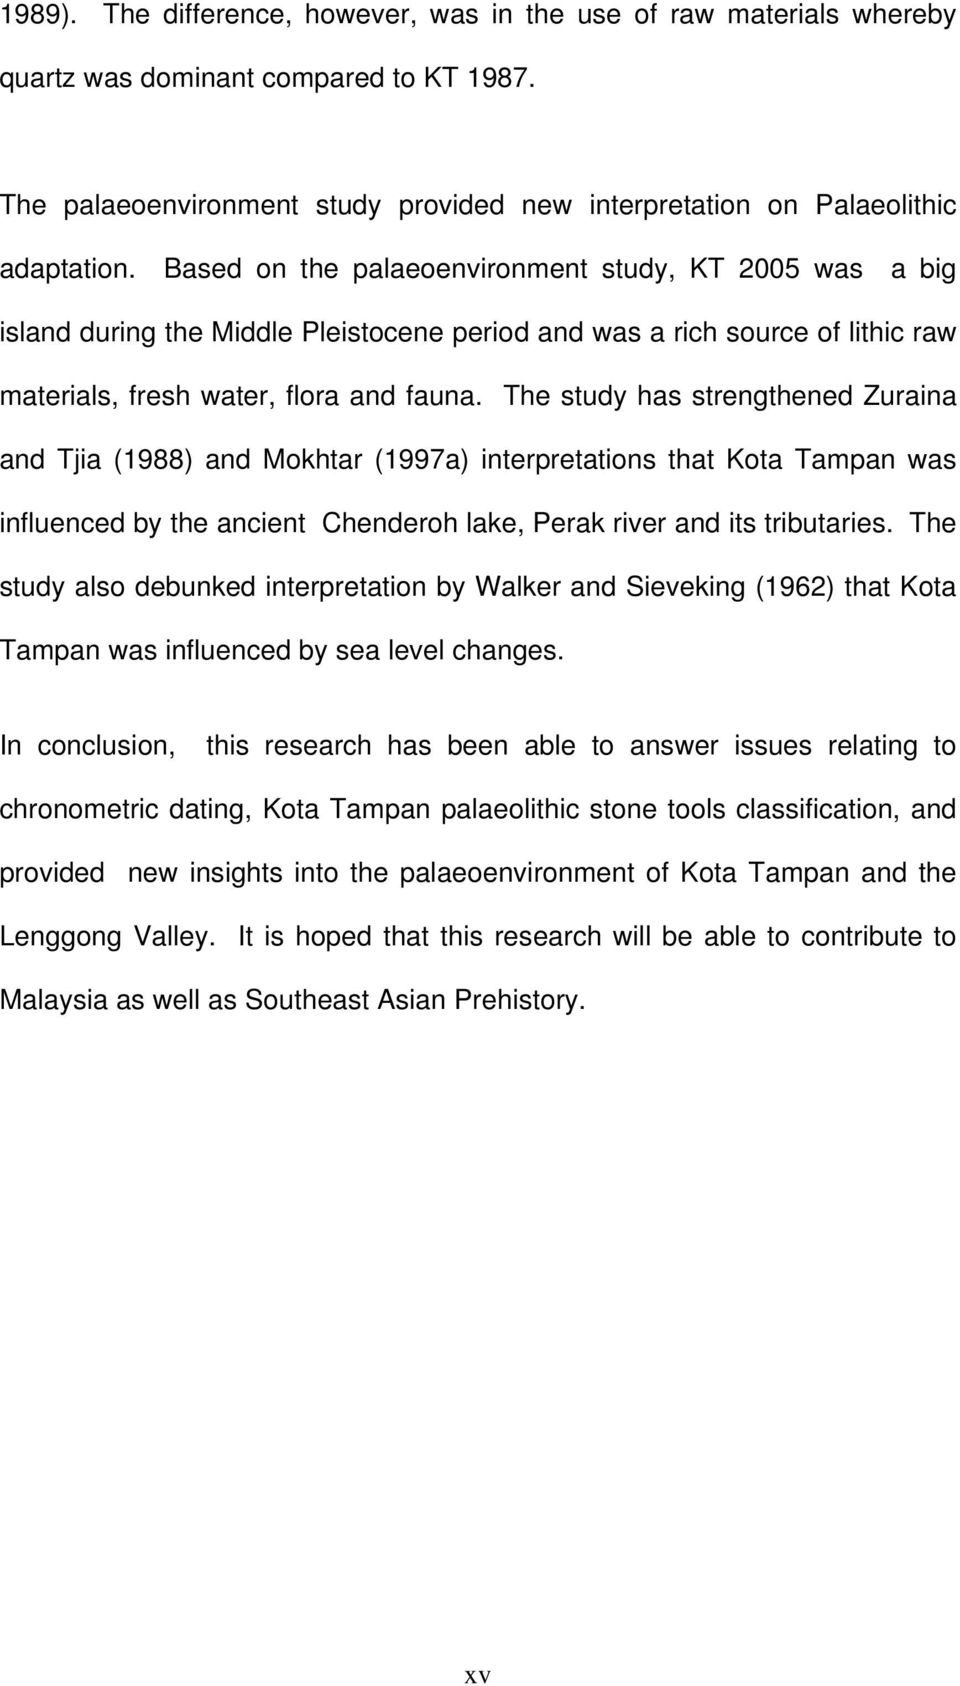 The study has strengthened Zuraina and Tjia (1988) and Mokhtar (1997a) interpretations that Kota Tampan was influenced by the ancient Chenderoh lake, Perak river and its tributaries.